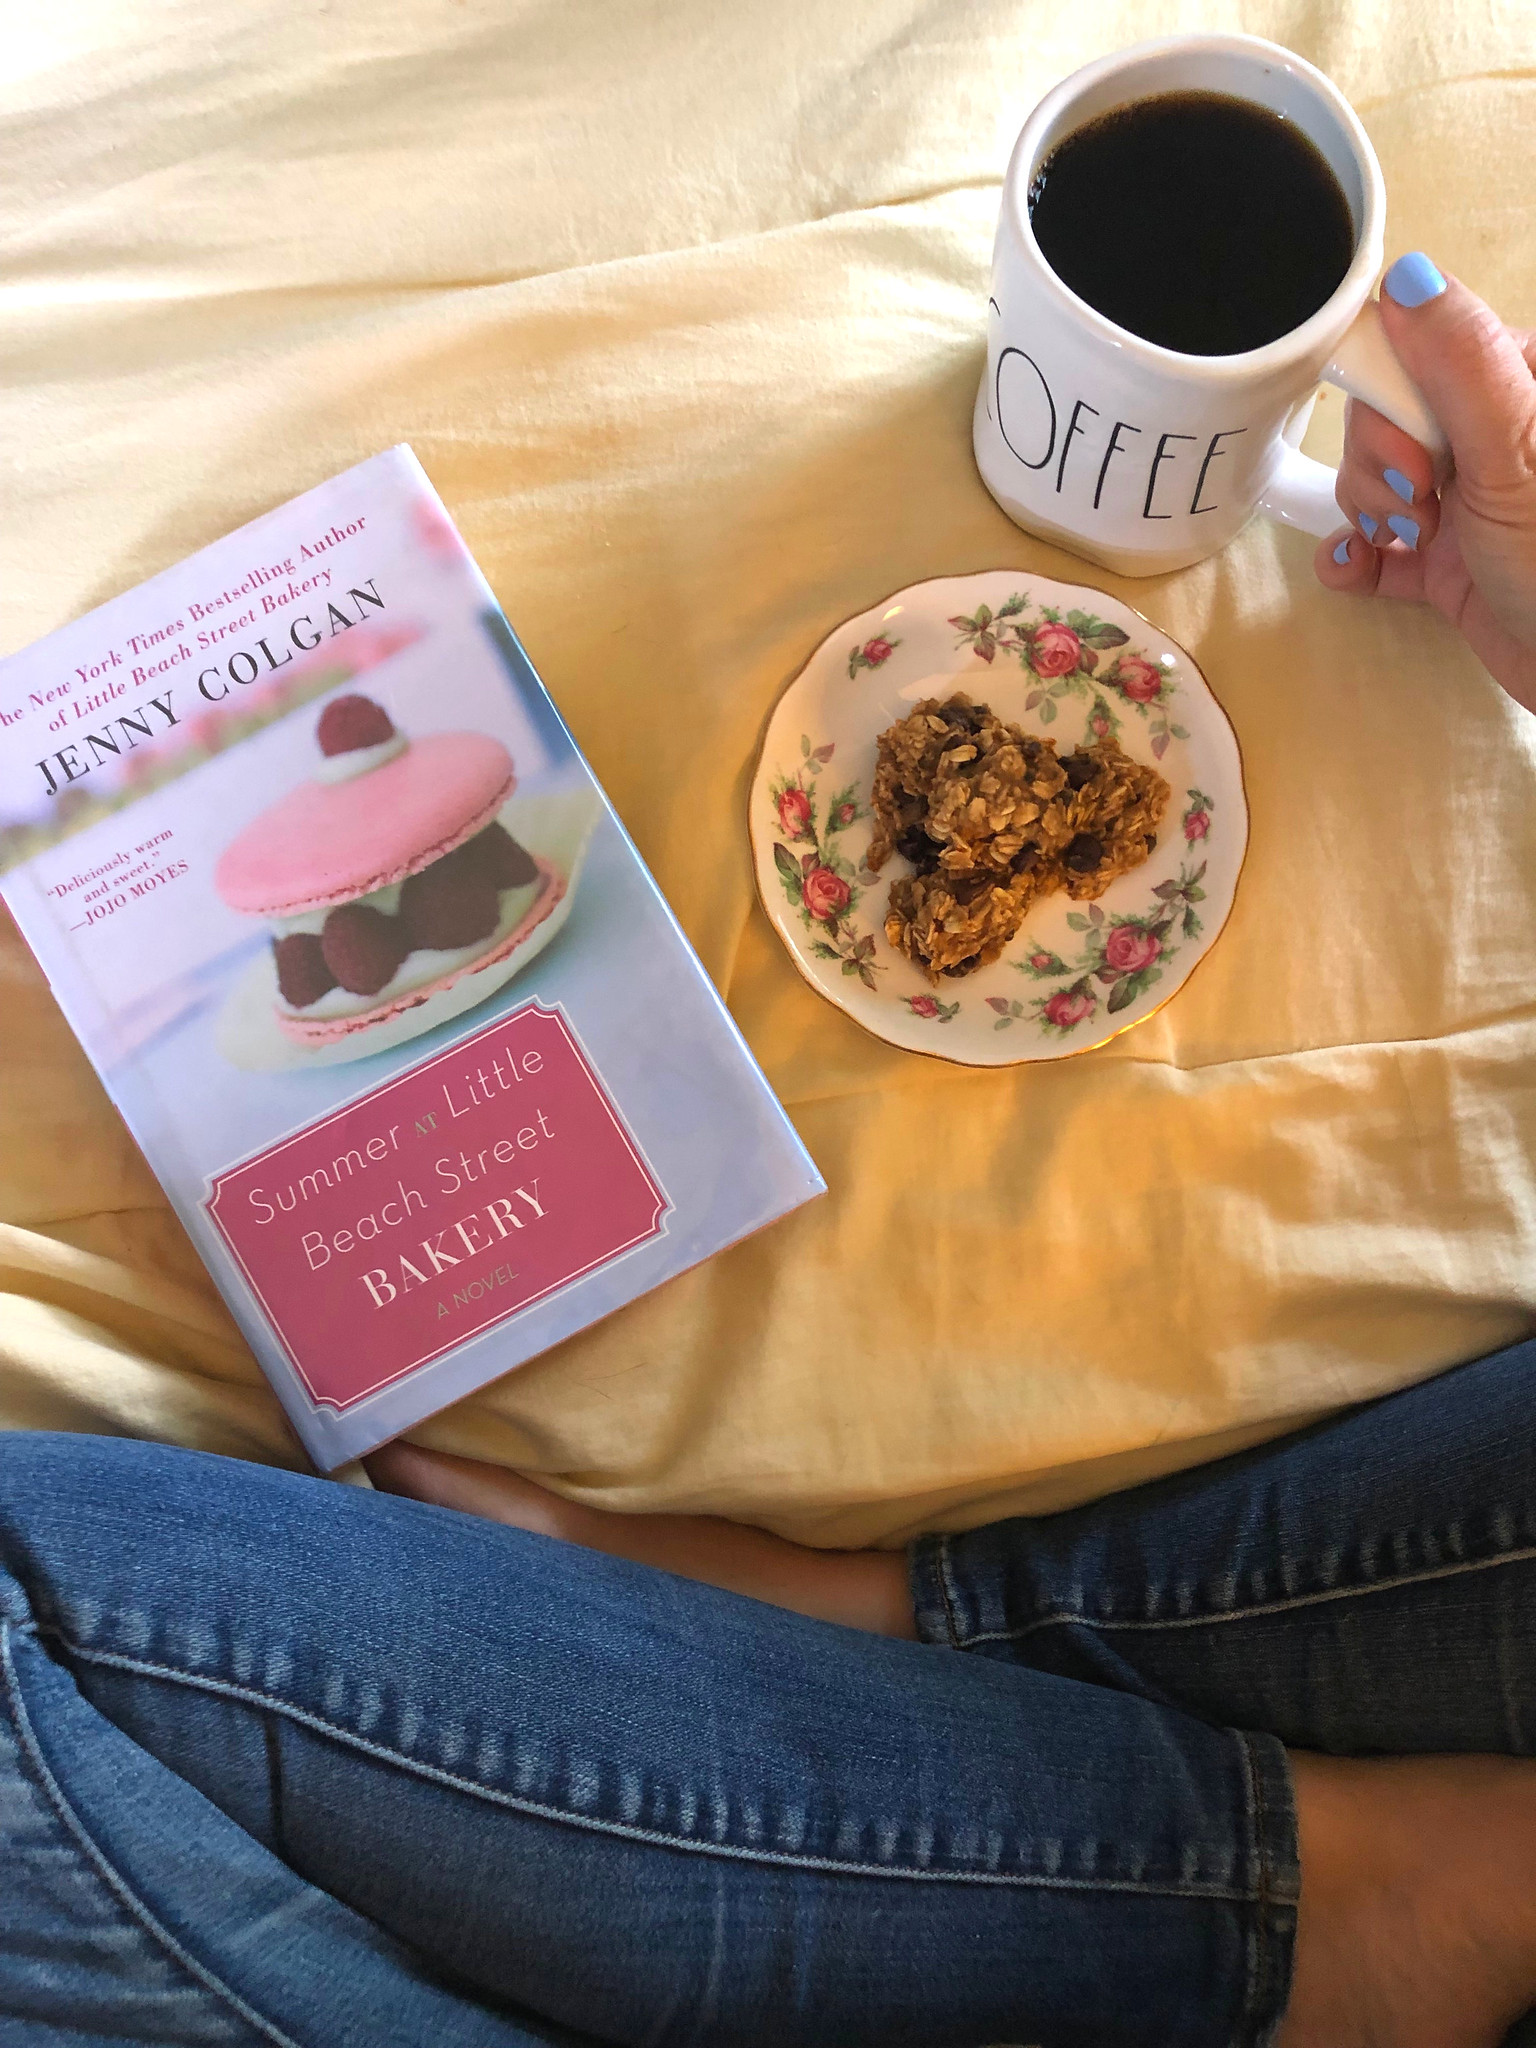 Balancing grit & care: self-care on a journey. | Reading & Writing Rych